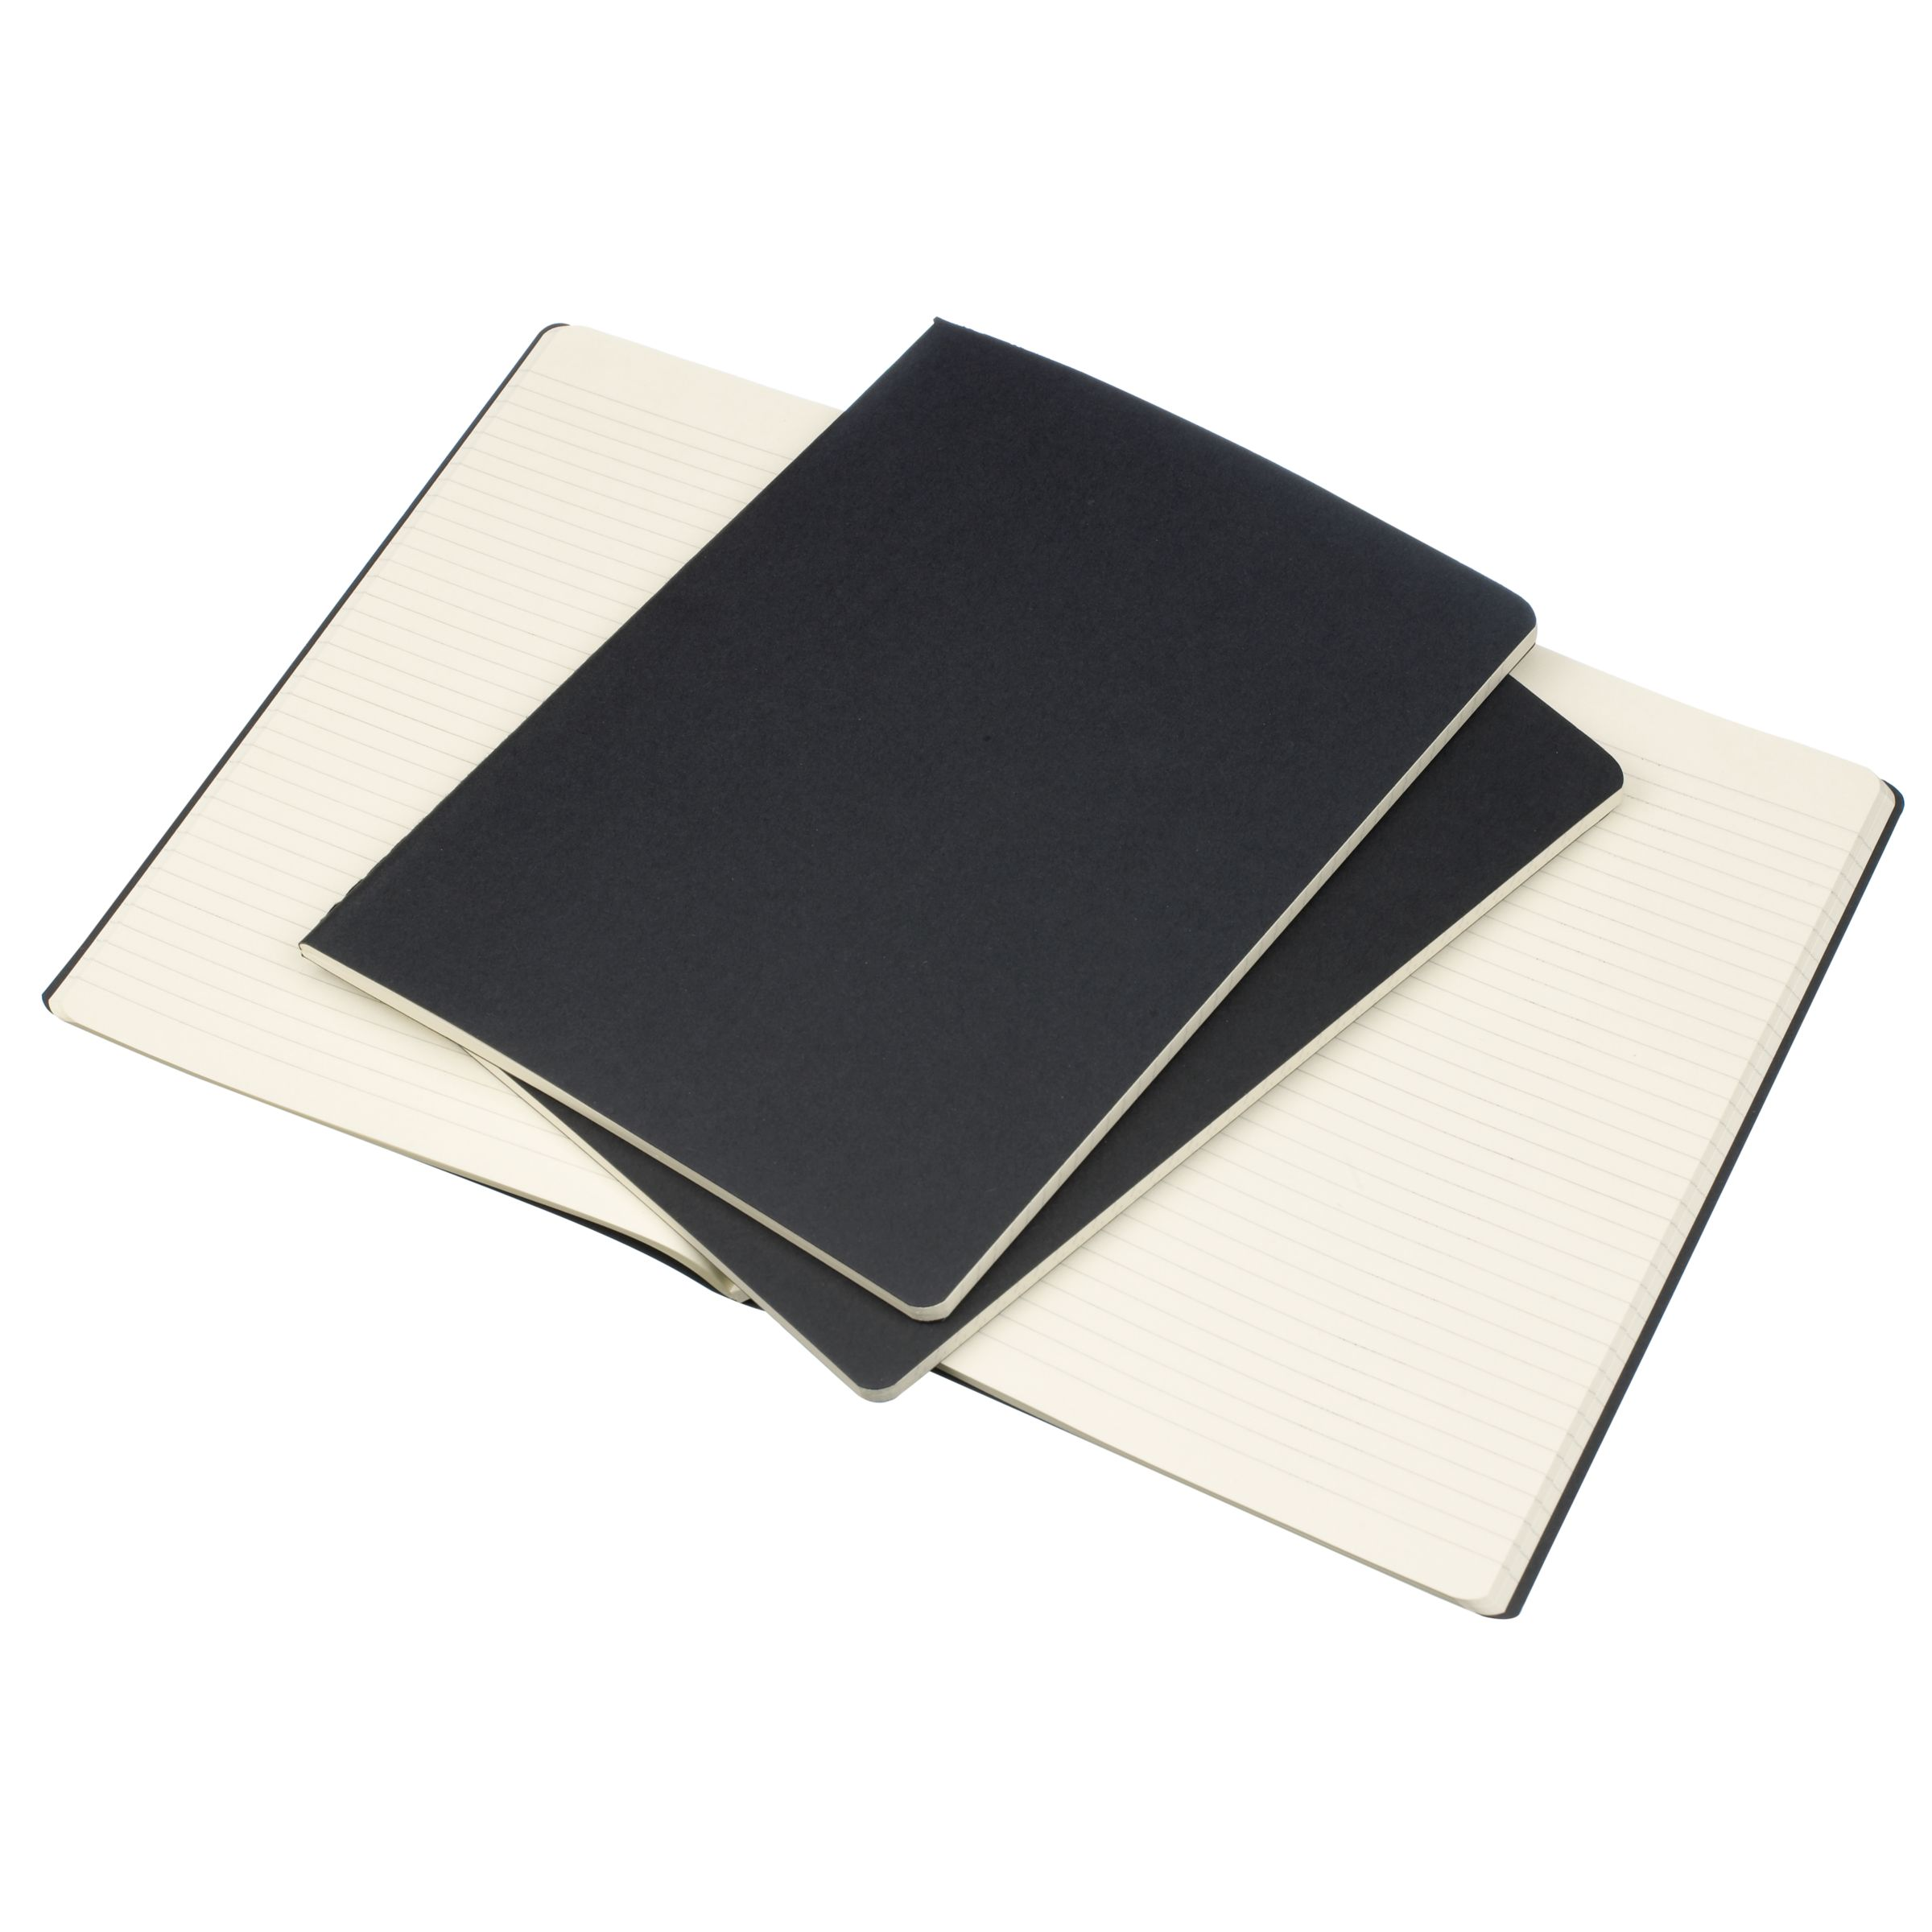 Cahier Ruled Notebooks, Pack of 3 166085